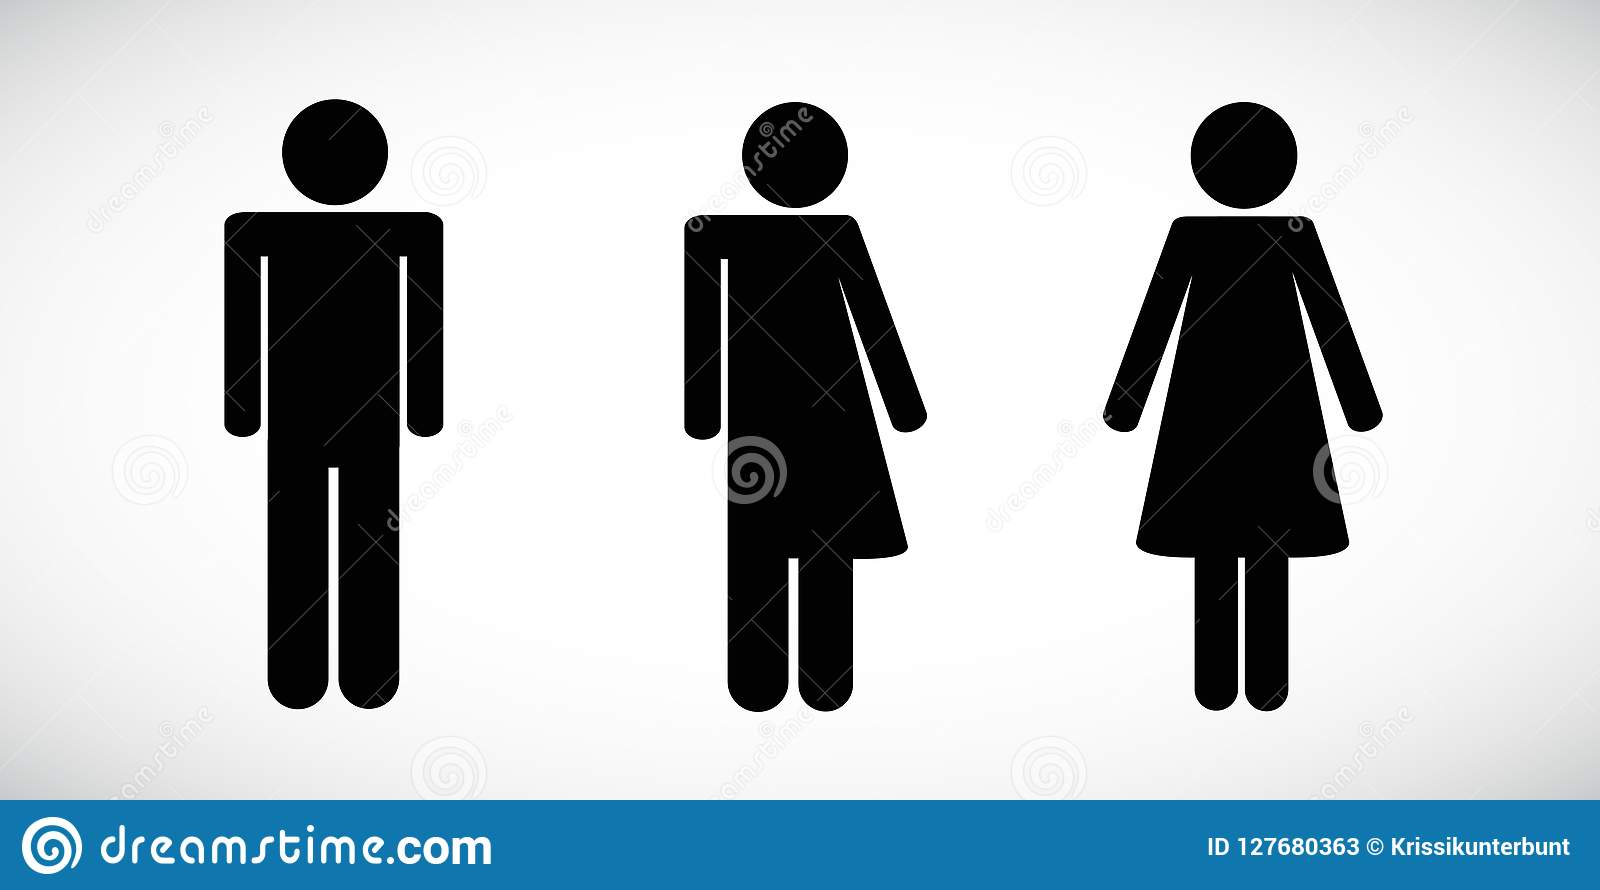 gender neutral icon stock illustrations 265 gender neutral icon stock illustrations vectors clipart dreamstime https www dreamstime com set restroom icons including gender neutral icon pictogram set restroom icons including gender neutral icon pictogram vector image127680363